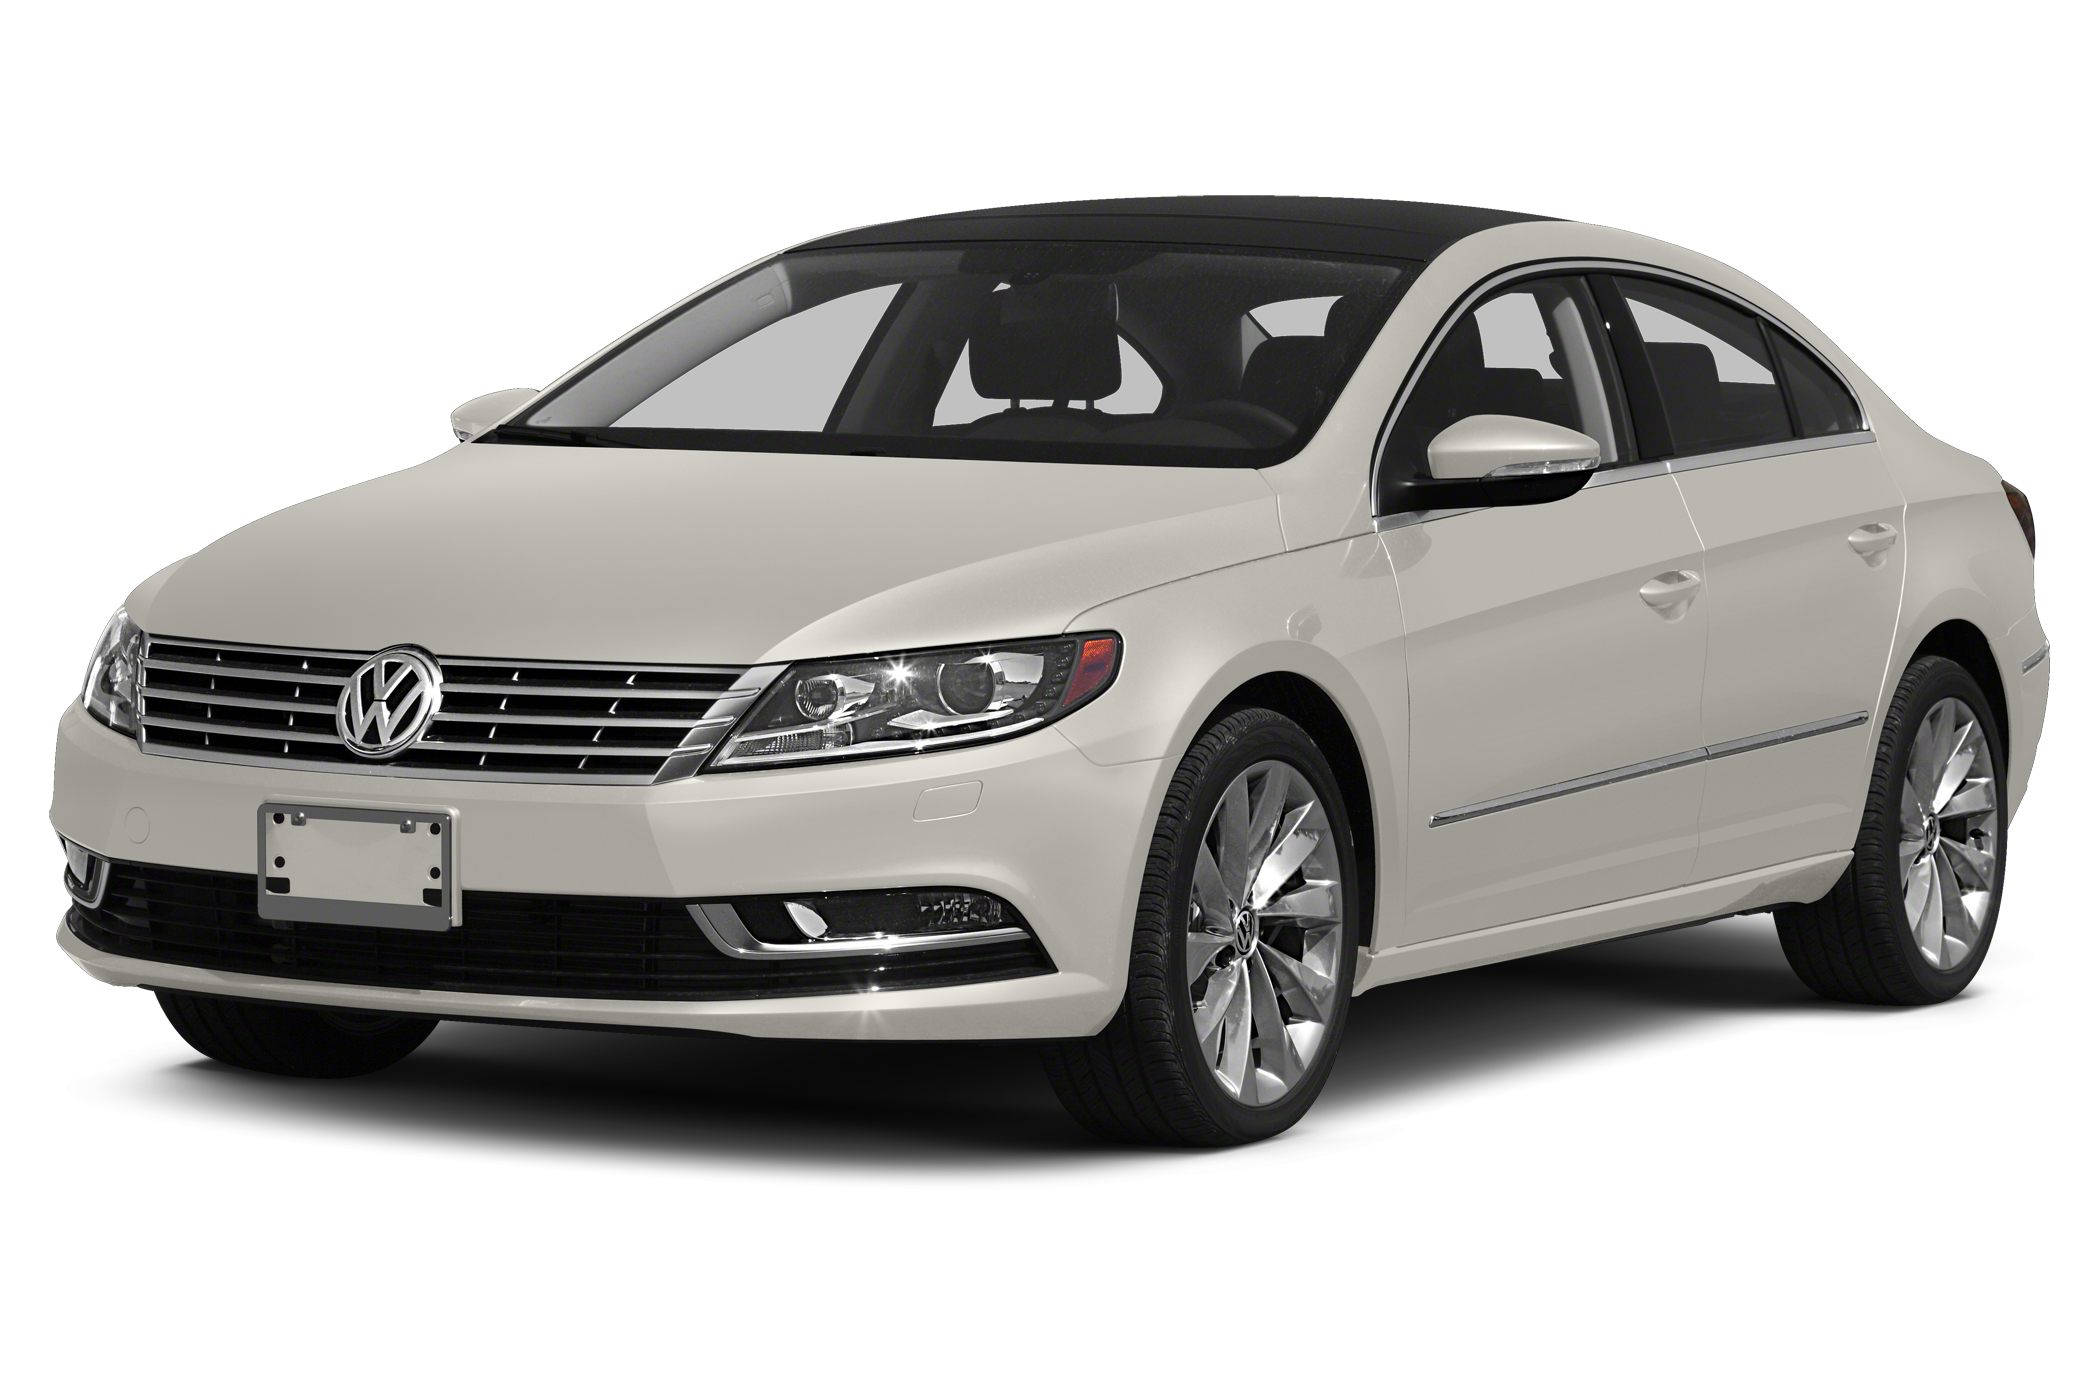 2014 Volkswagen CC 2.0T Executive Sedan for sale in Bensenville for $28,976 with 10,684 miles